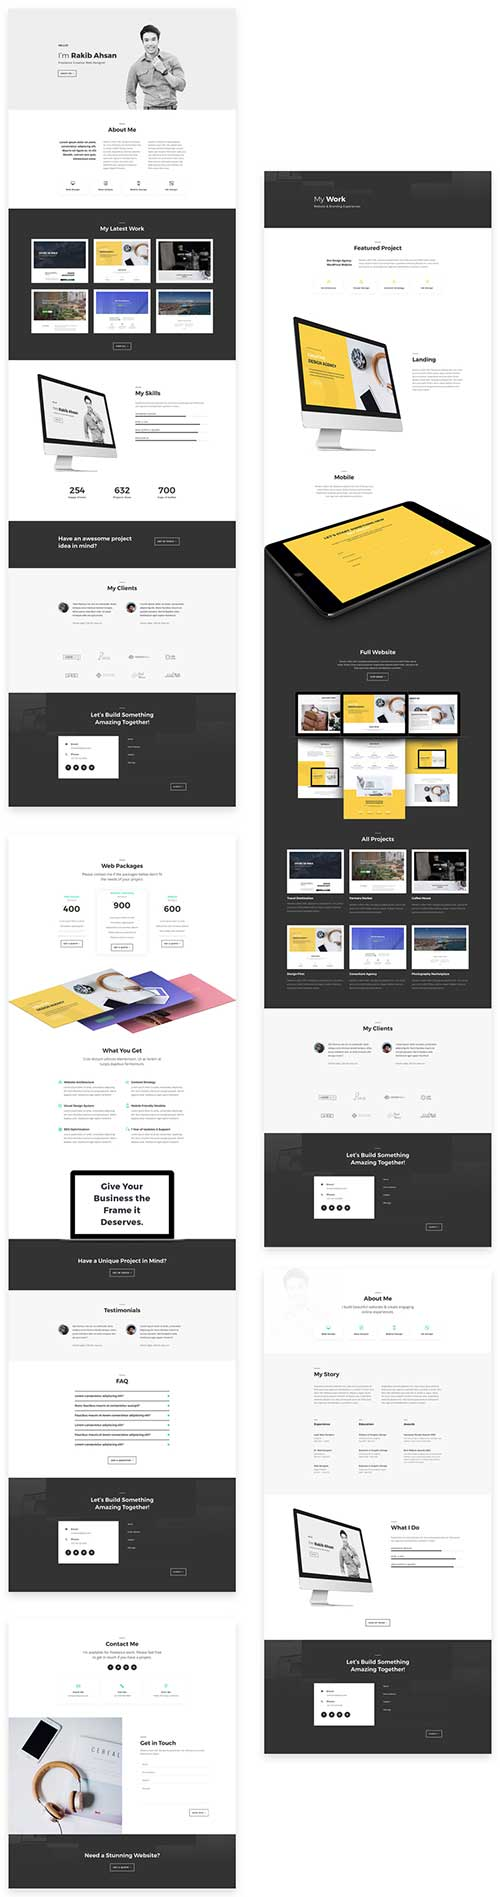 freelancers divi layout pack